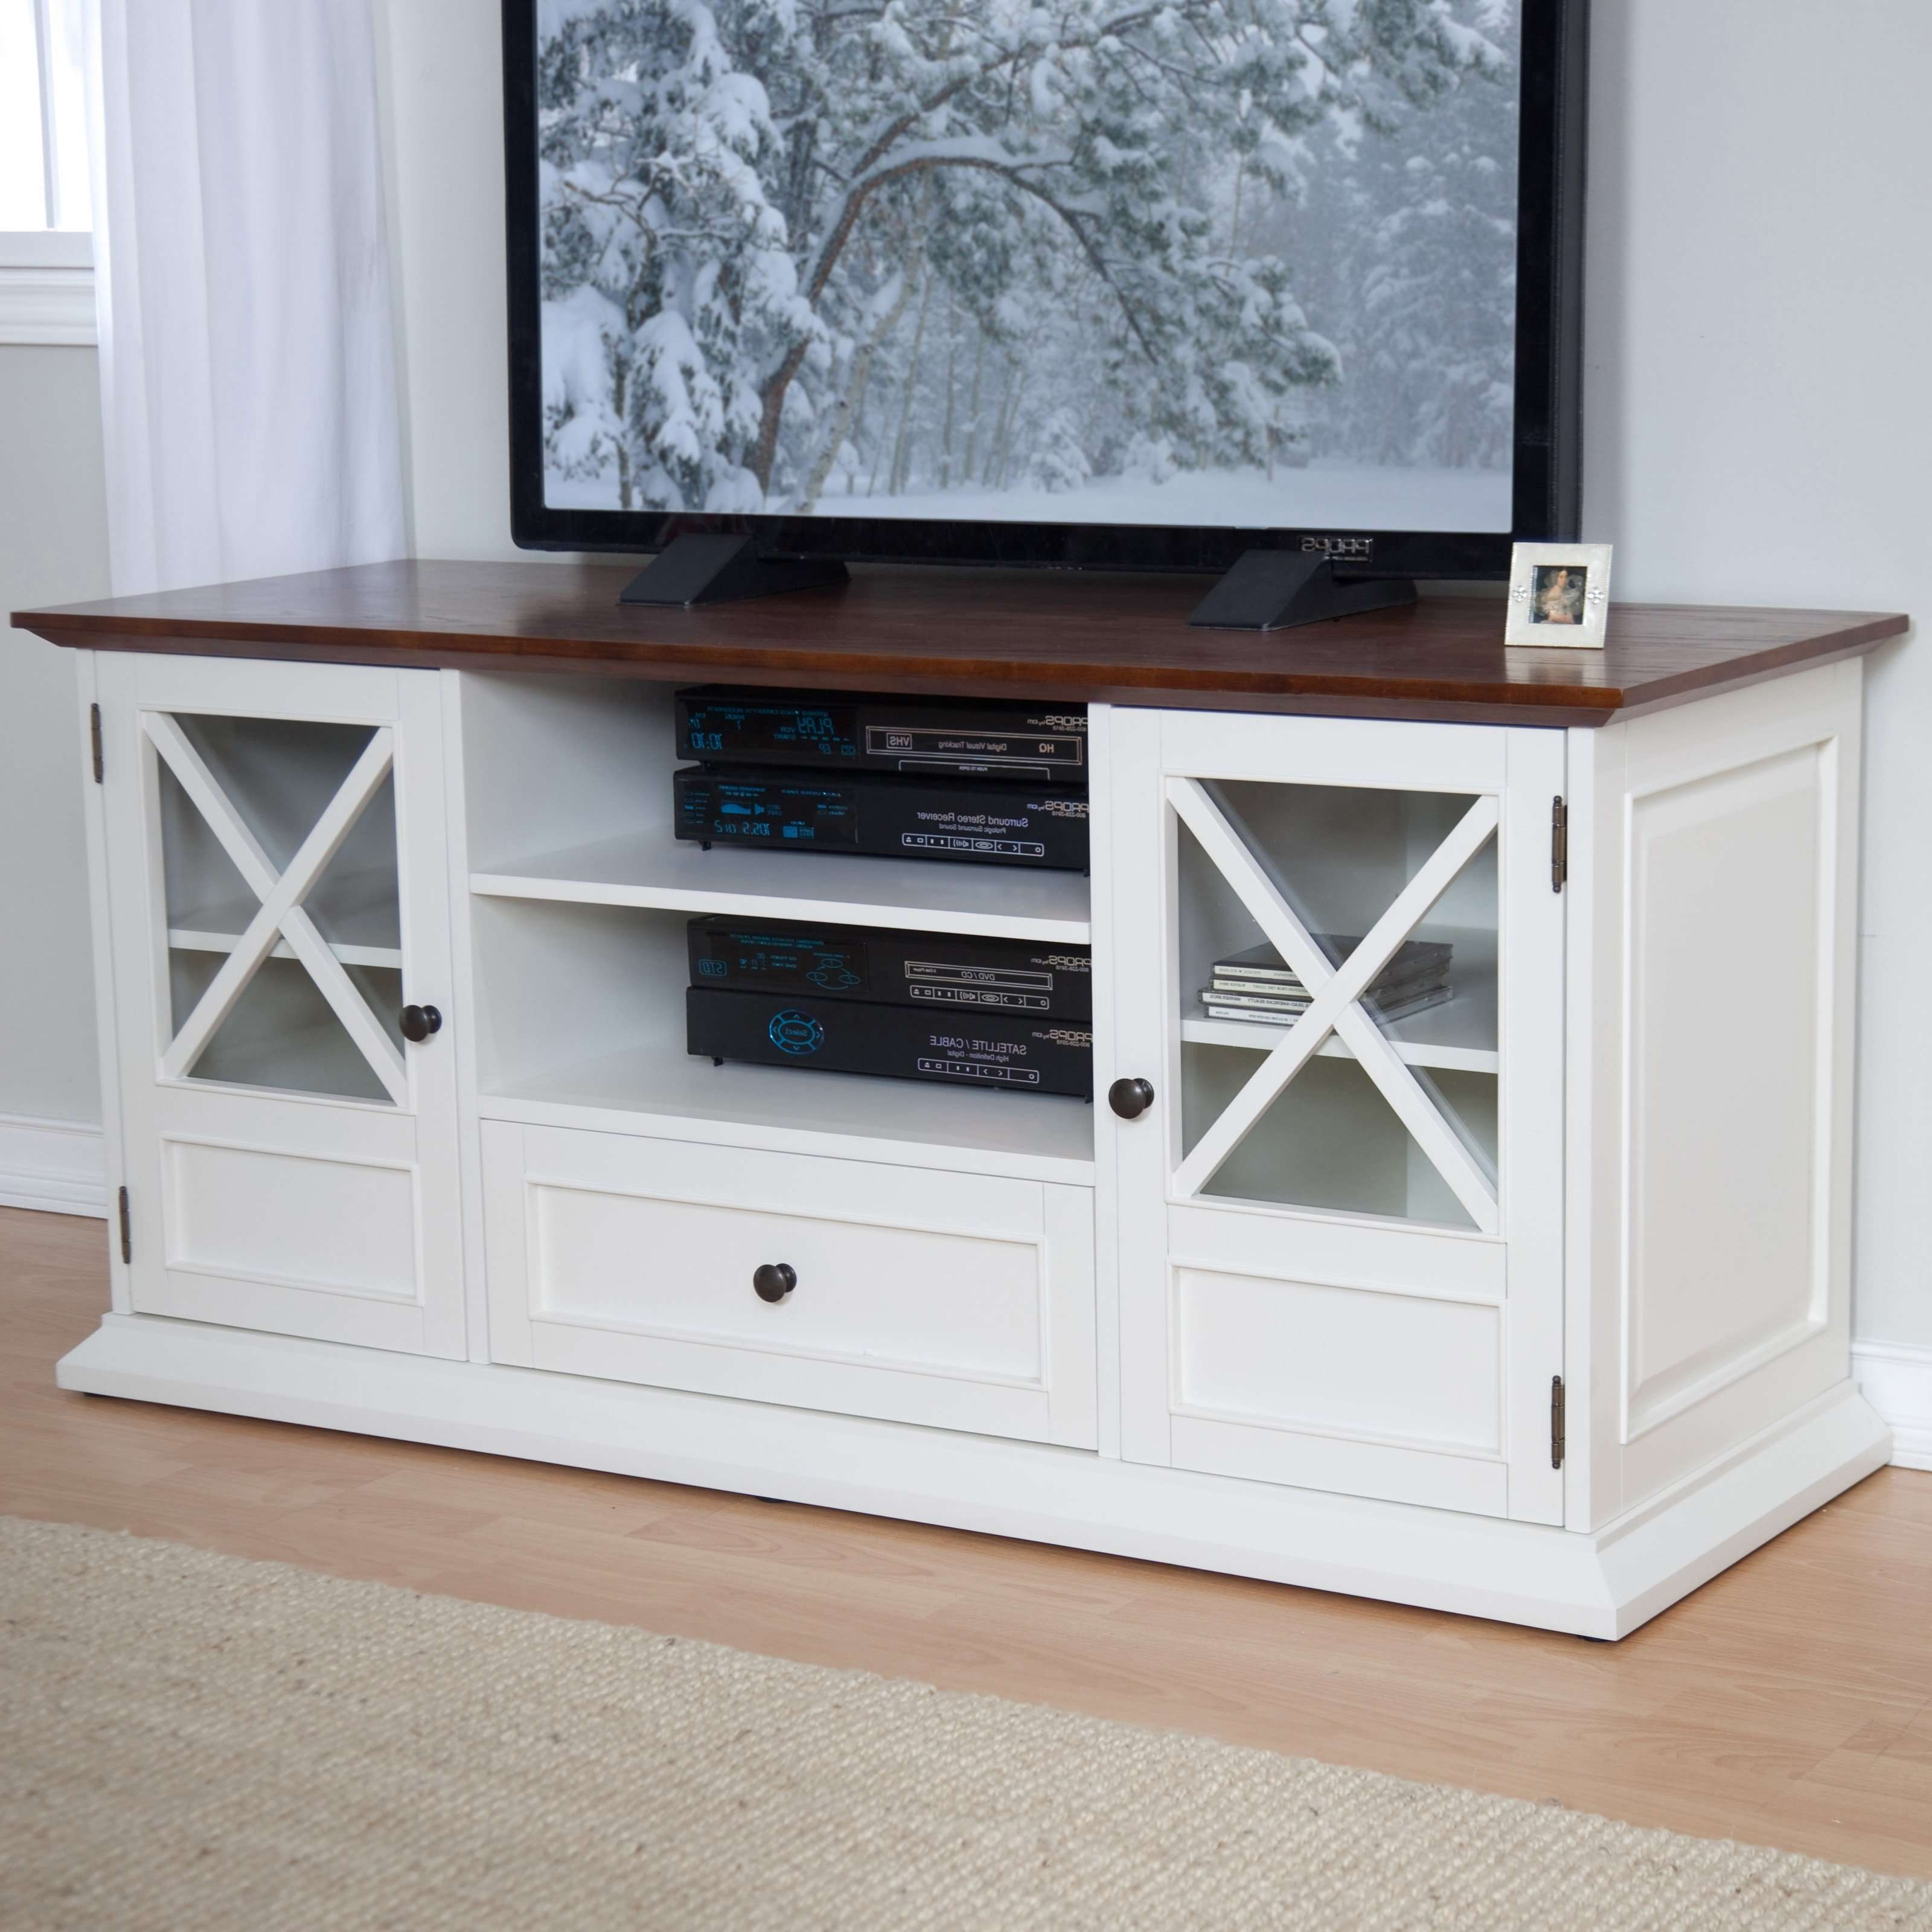 Belham Living Hampton Console Table 2 Shelf Bookcase – White/oak With Regard To Grey Wood Tv Stands (View 11 of 15)